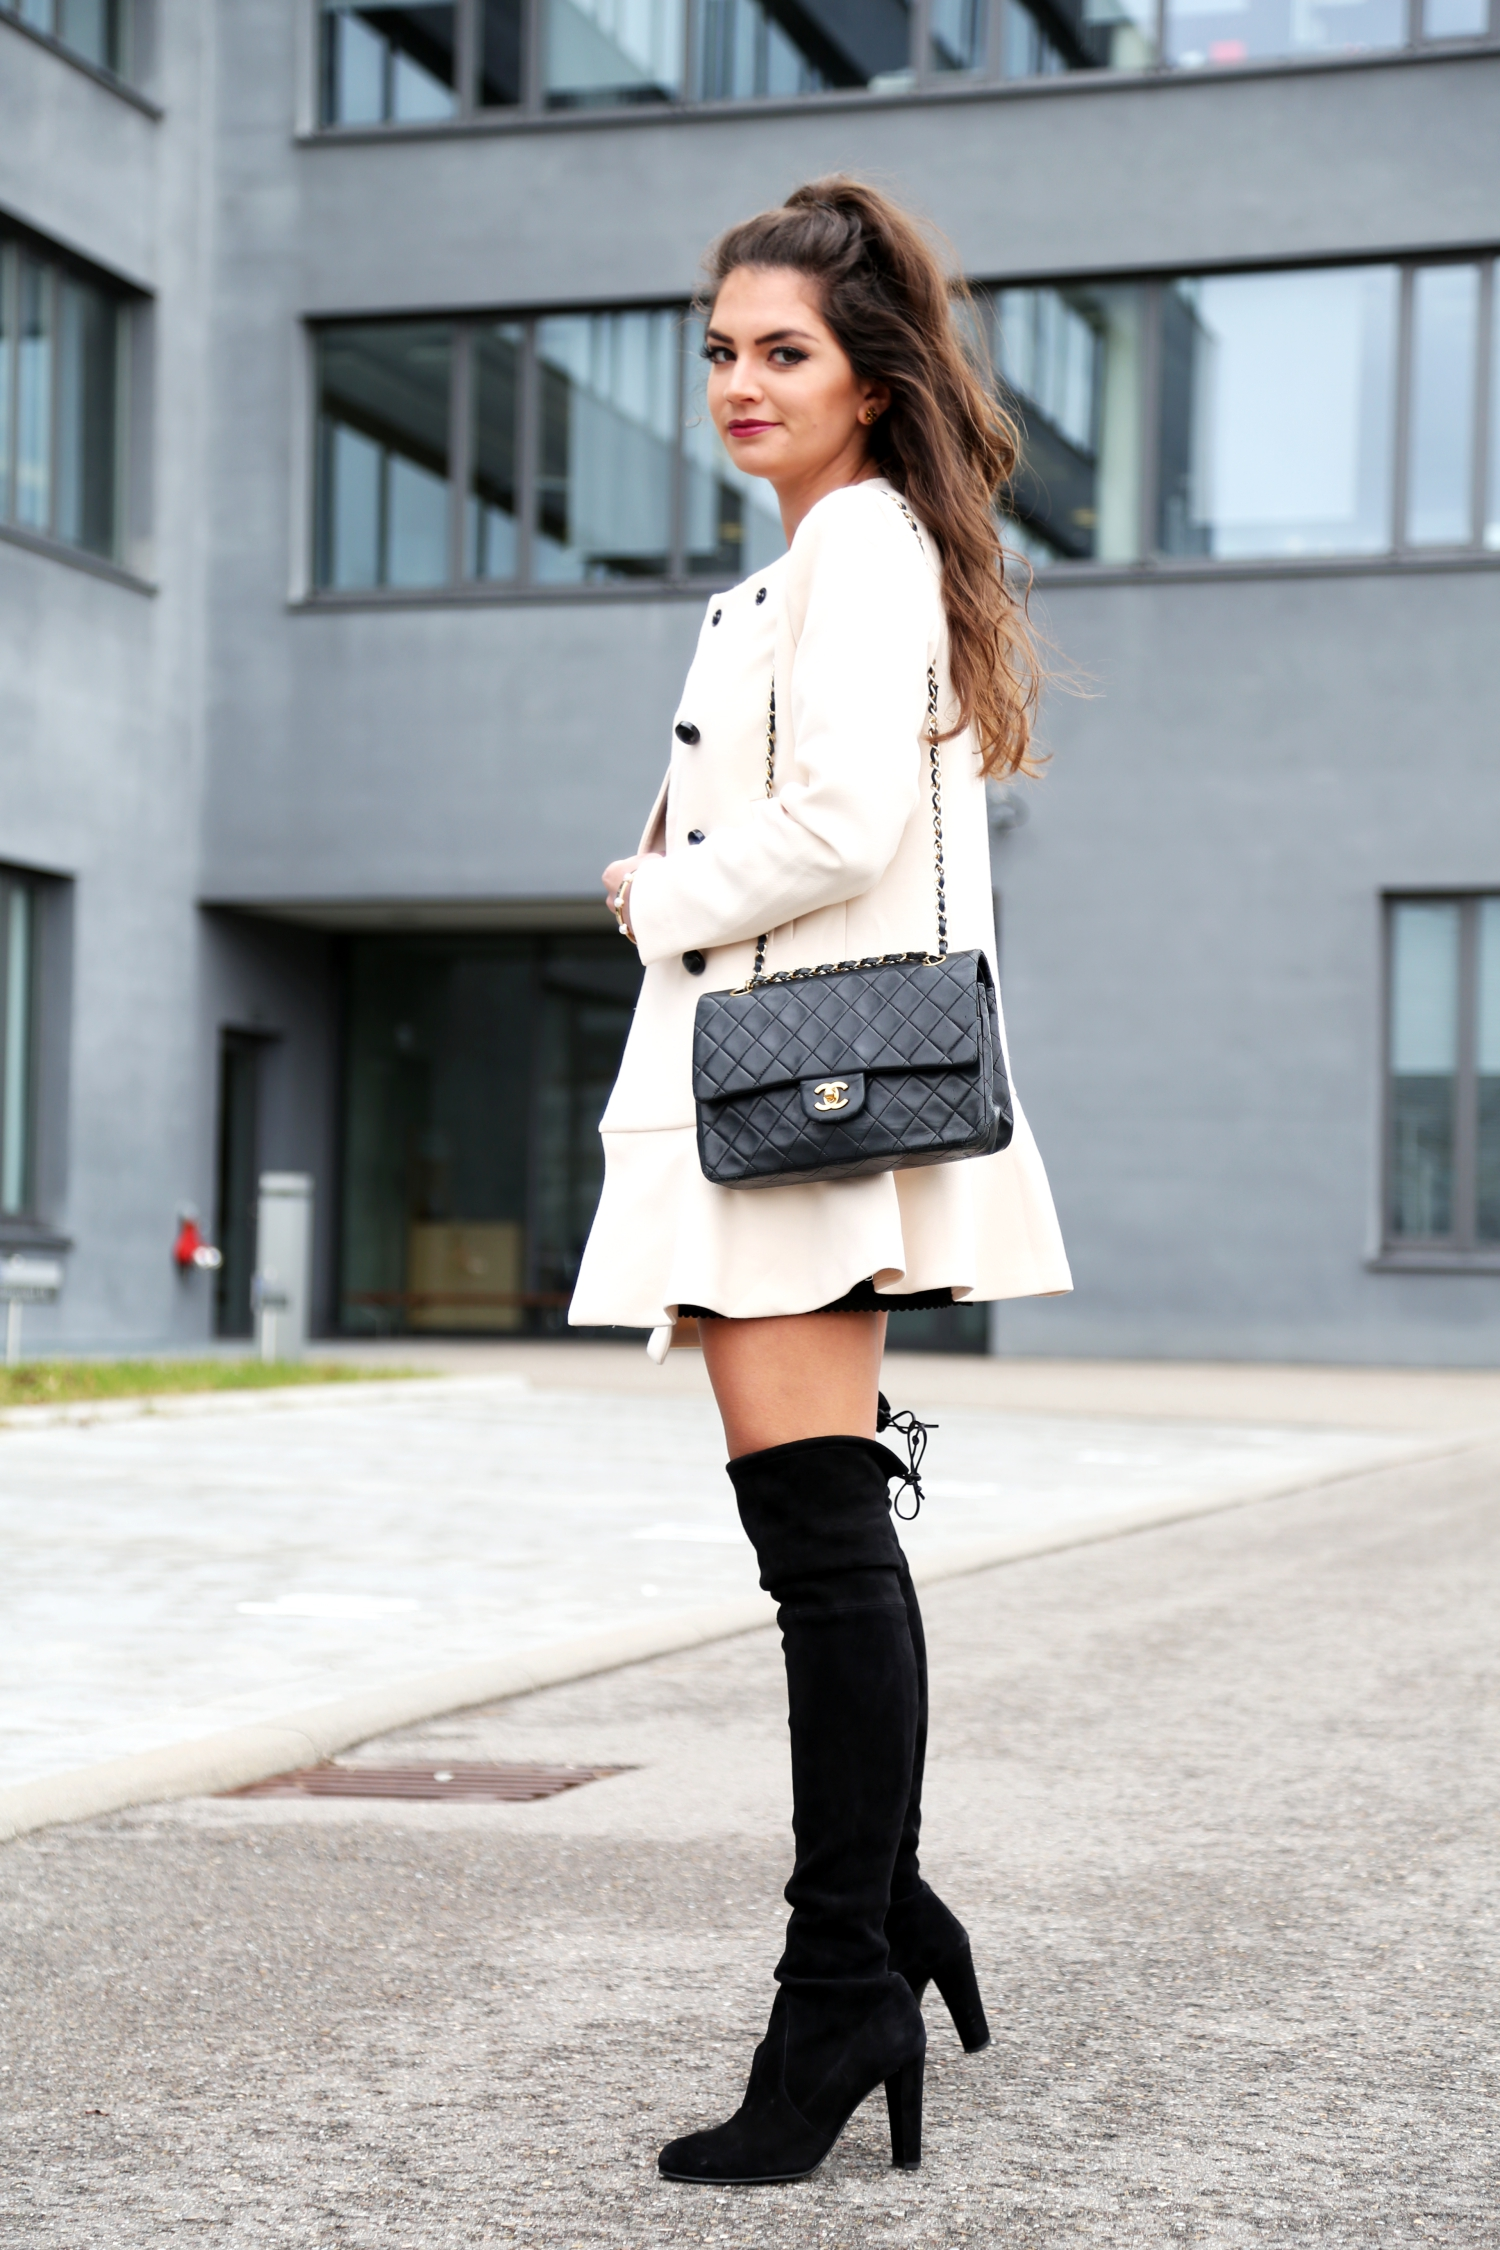 outfit-overknees-coat-spring-look-chanel-2.55-bag